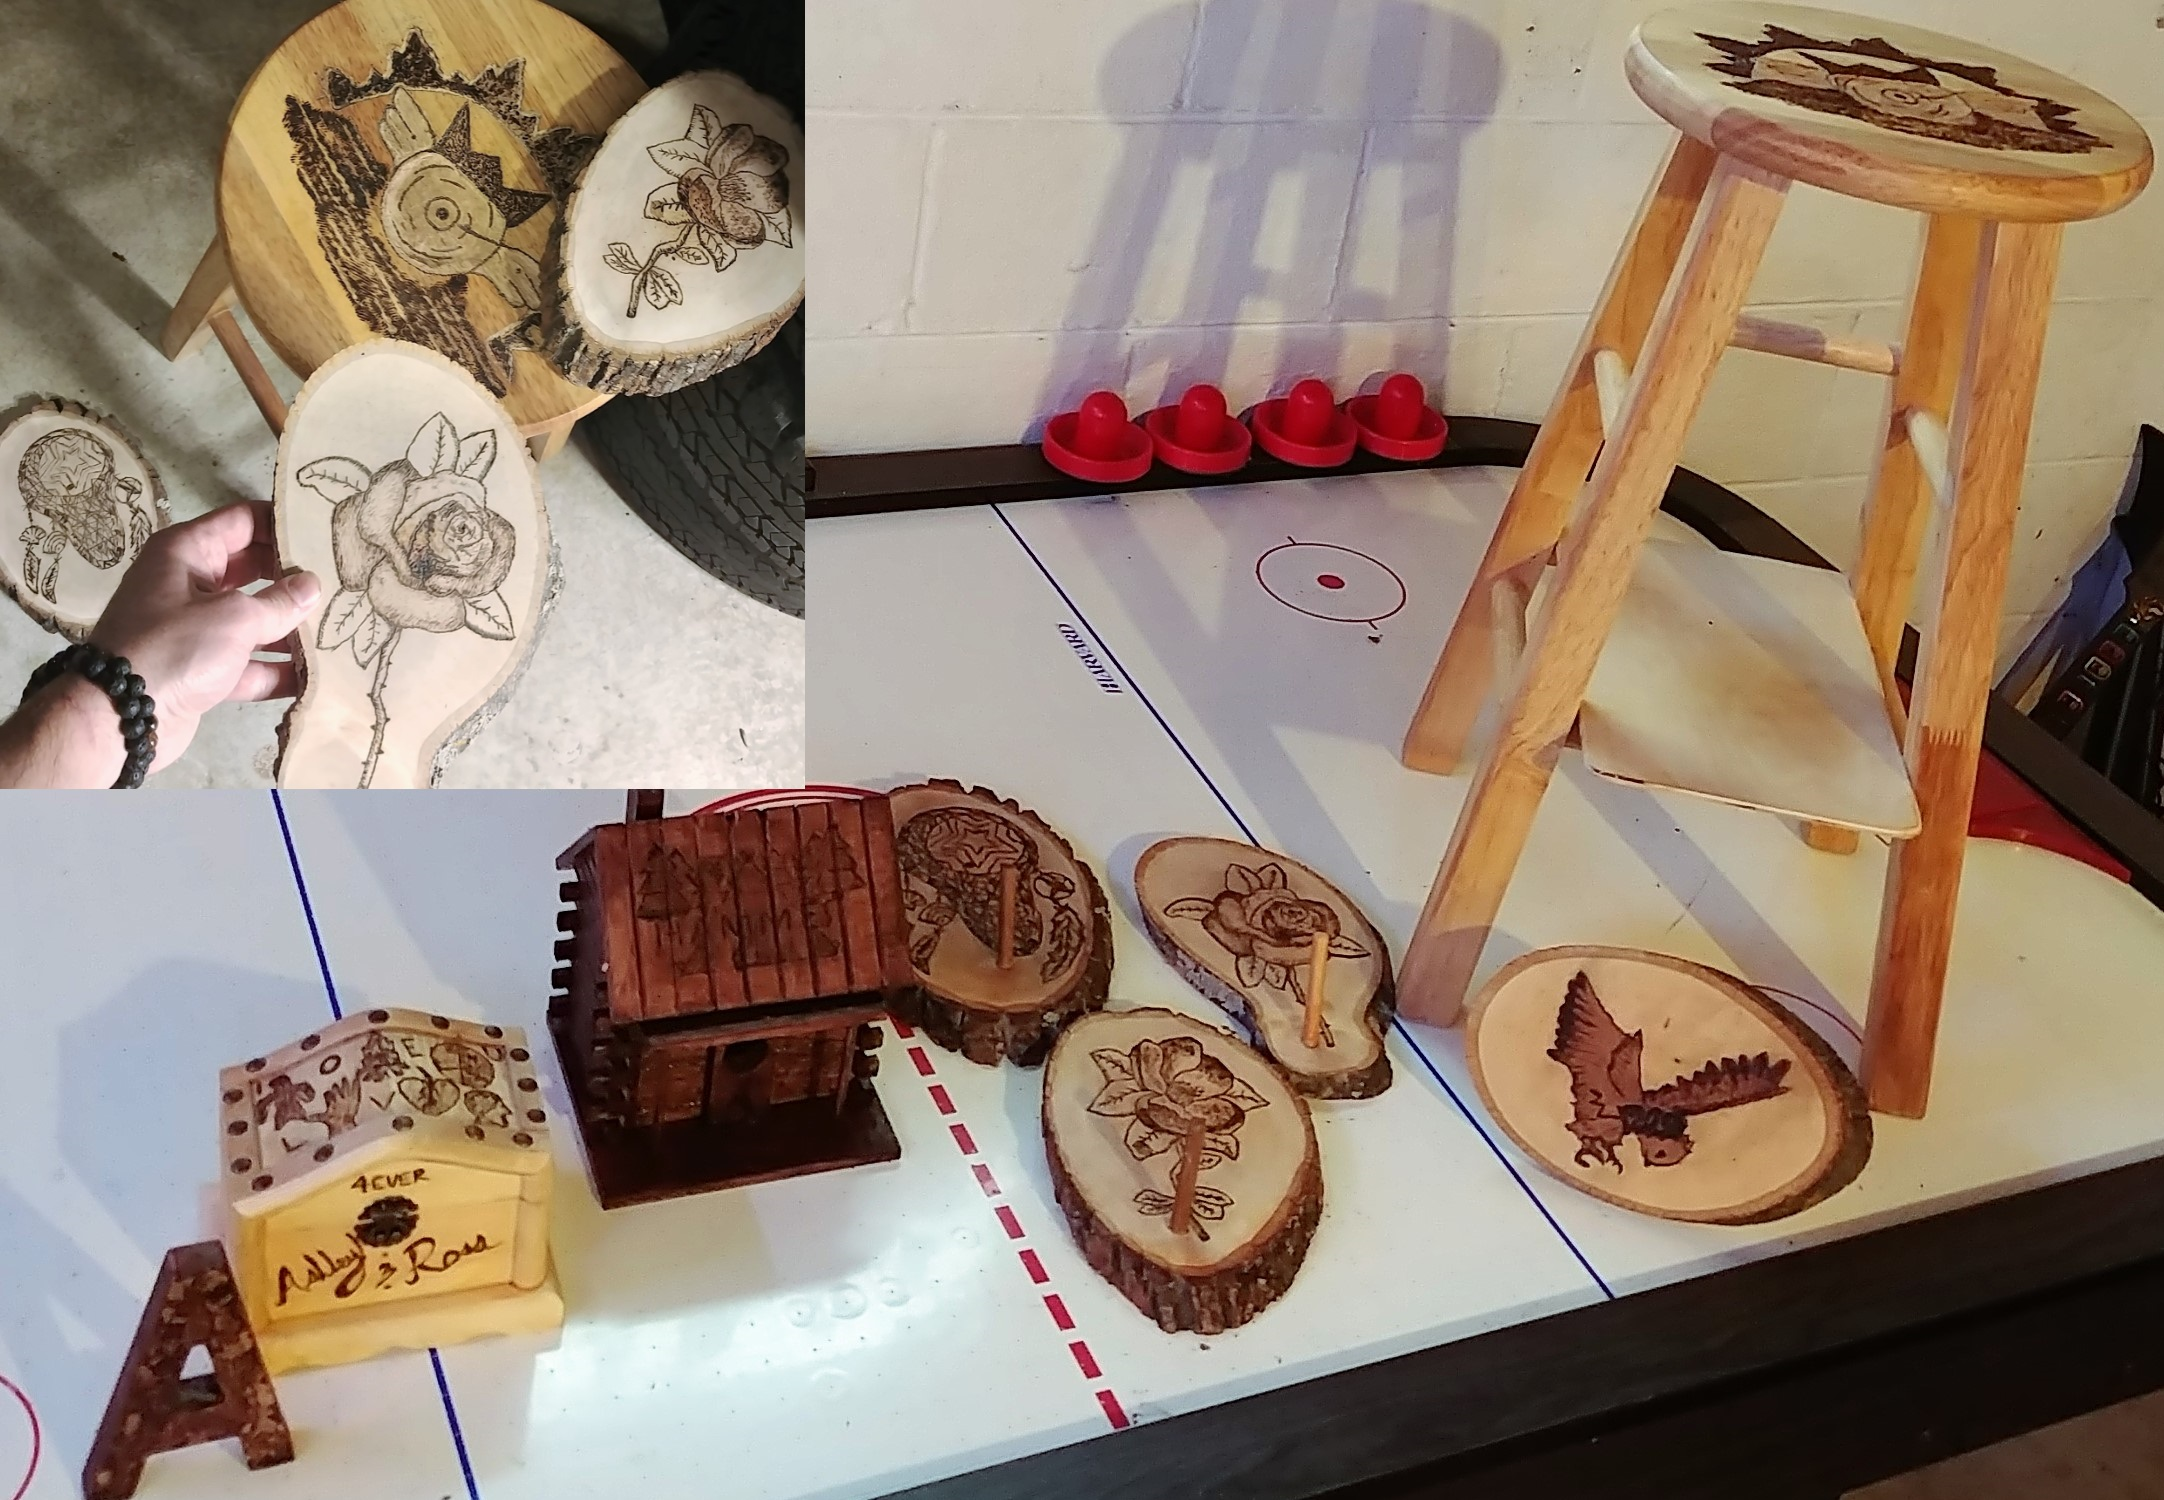 Wood Carving + Burning - A jewelry box, decorative letter, log cabin bird house, a stool/shelf, and 4 decorative key holders